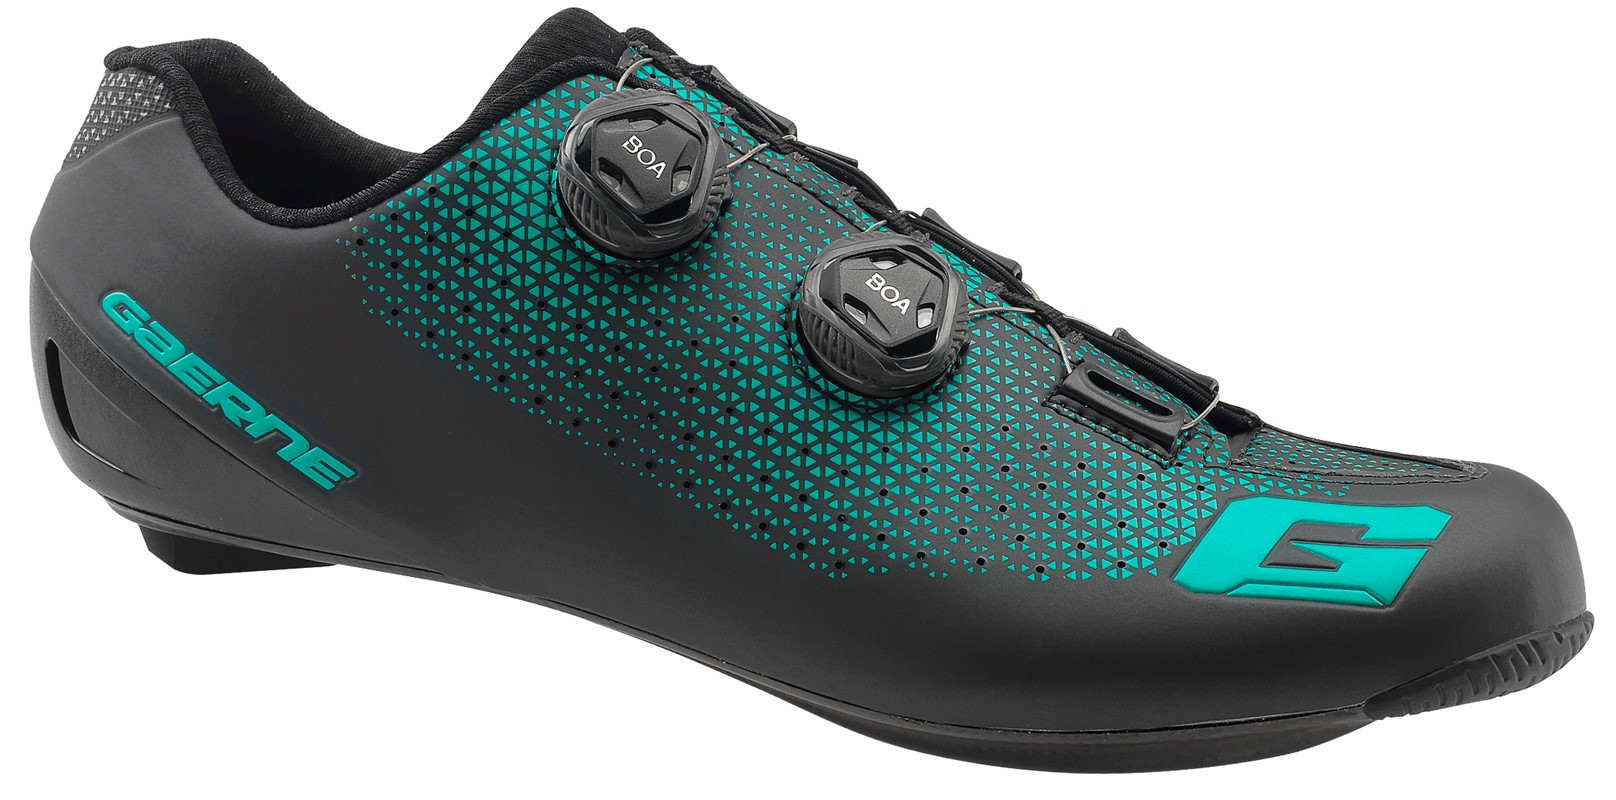 Gaerne Carbon Chrono+ SPD-SL Road Shoes | Shoes and overlays